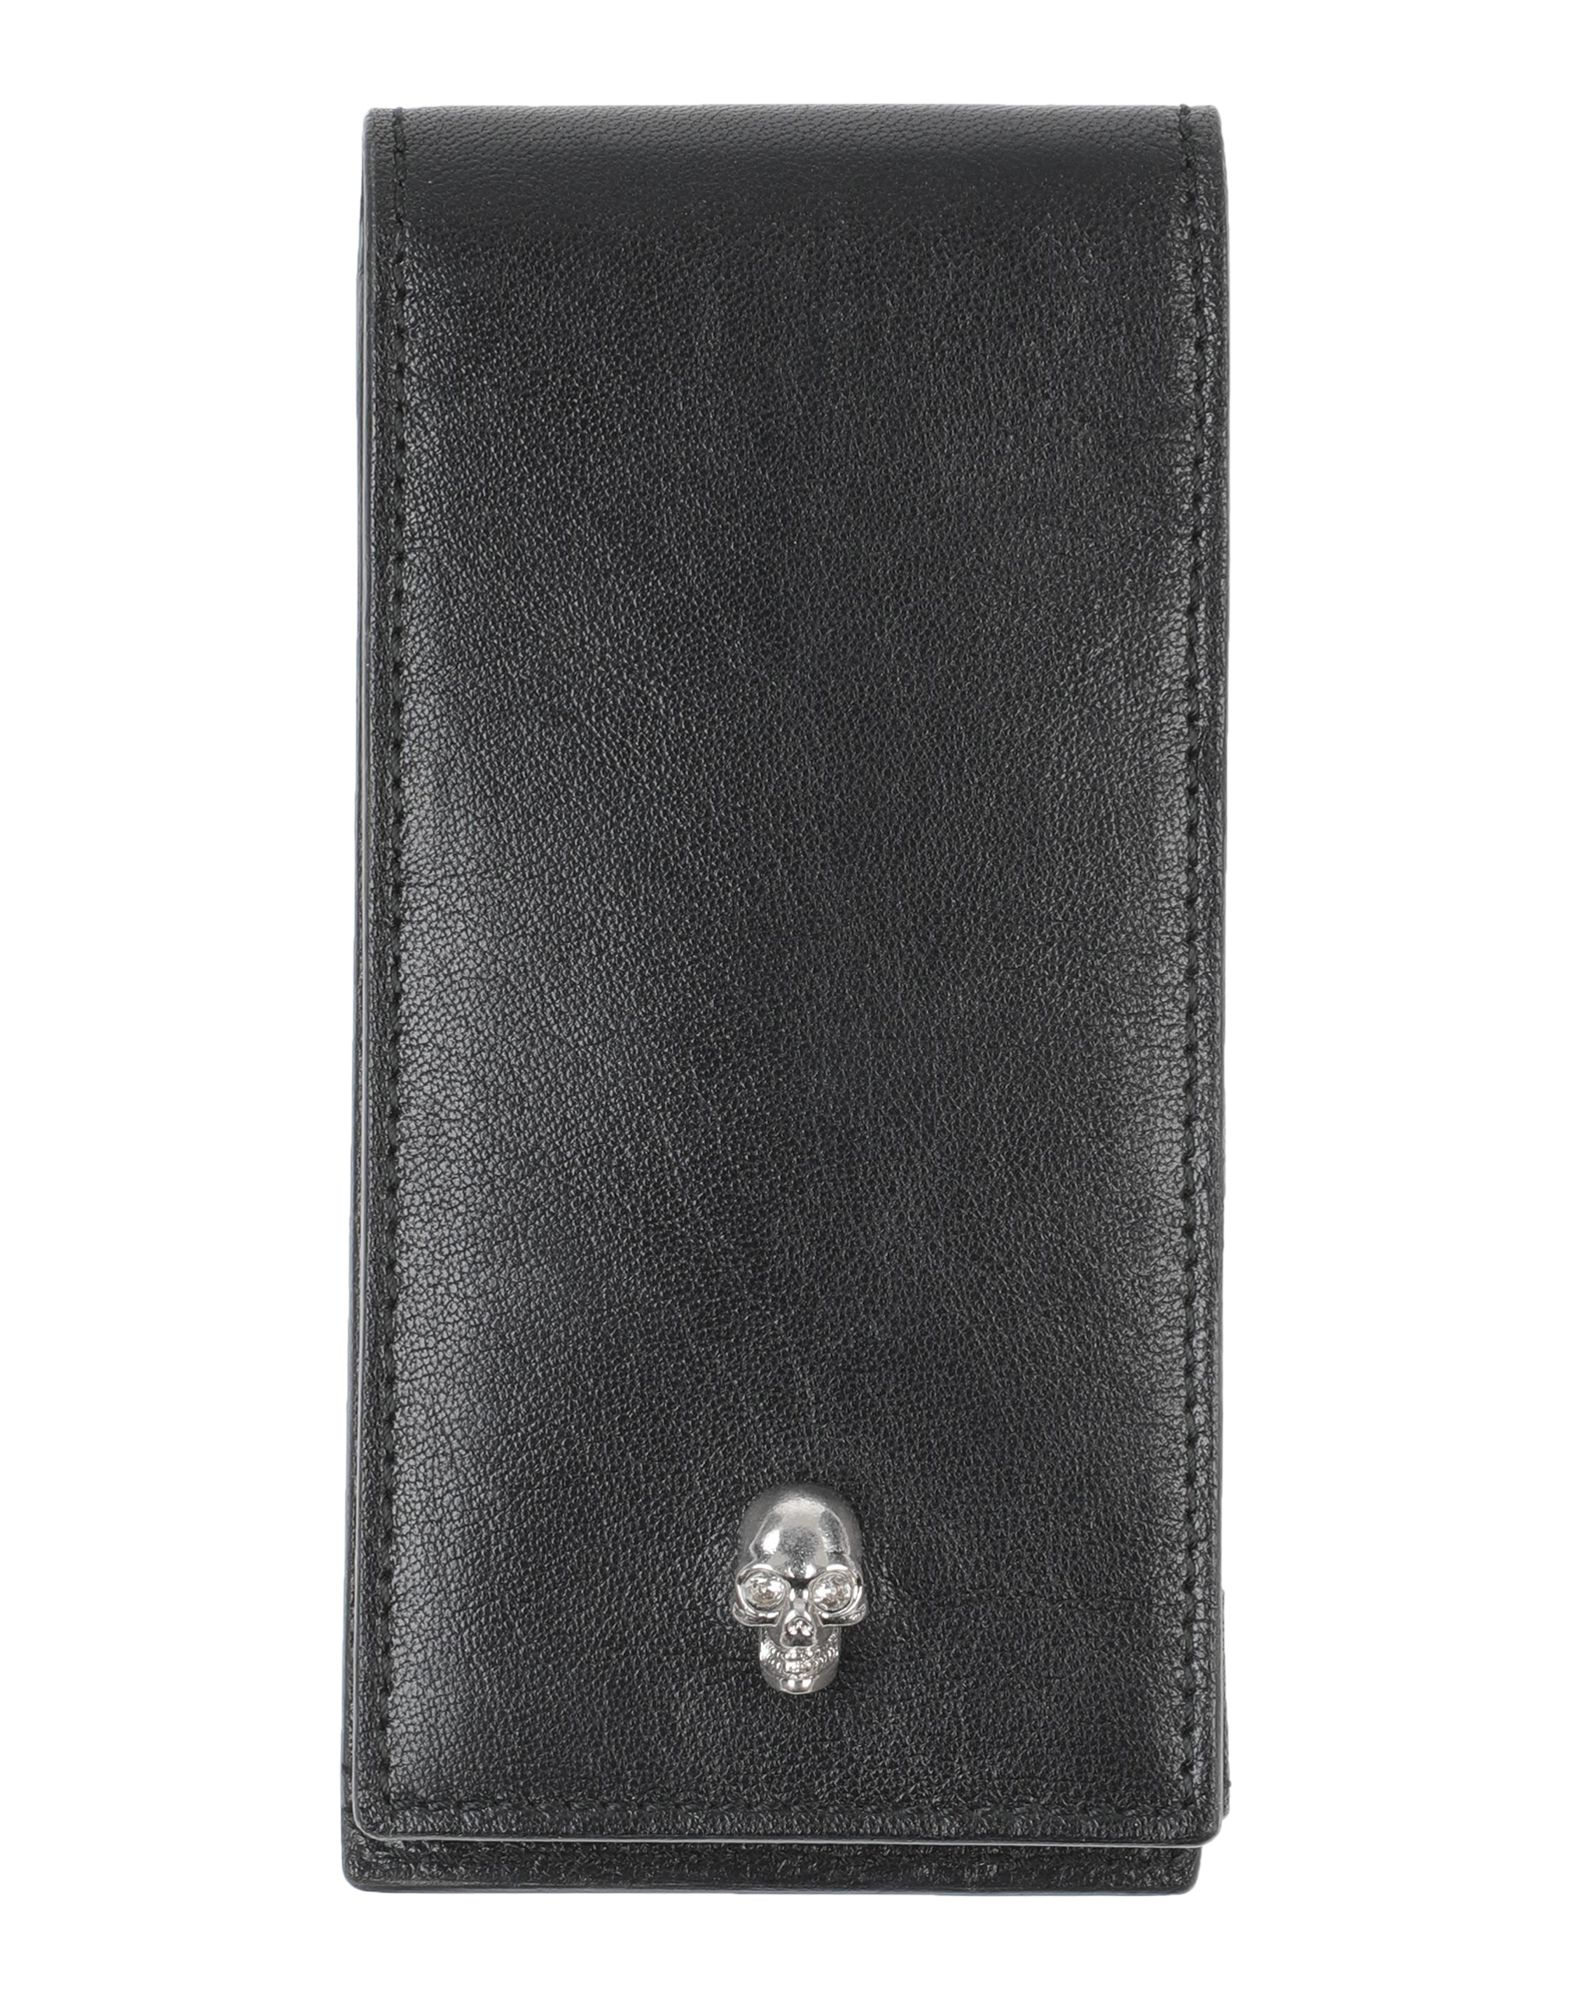 ALEXANDER MCQUEEN Covers & Cases. logo, solid color, iphone 4 cover, contains non-textile parts of animal origin. Soft Leather